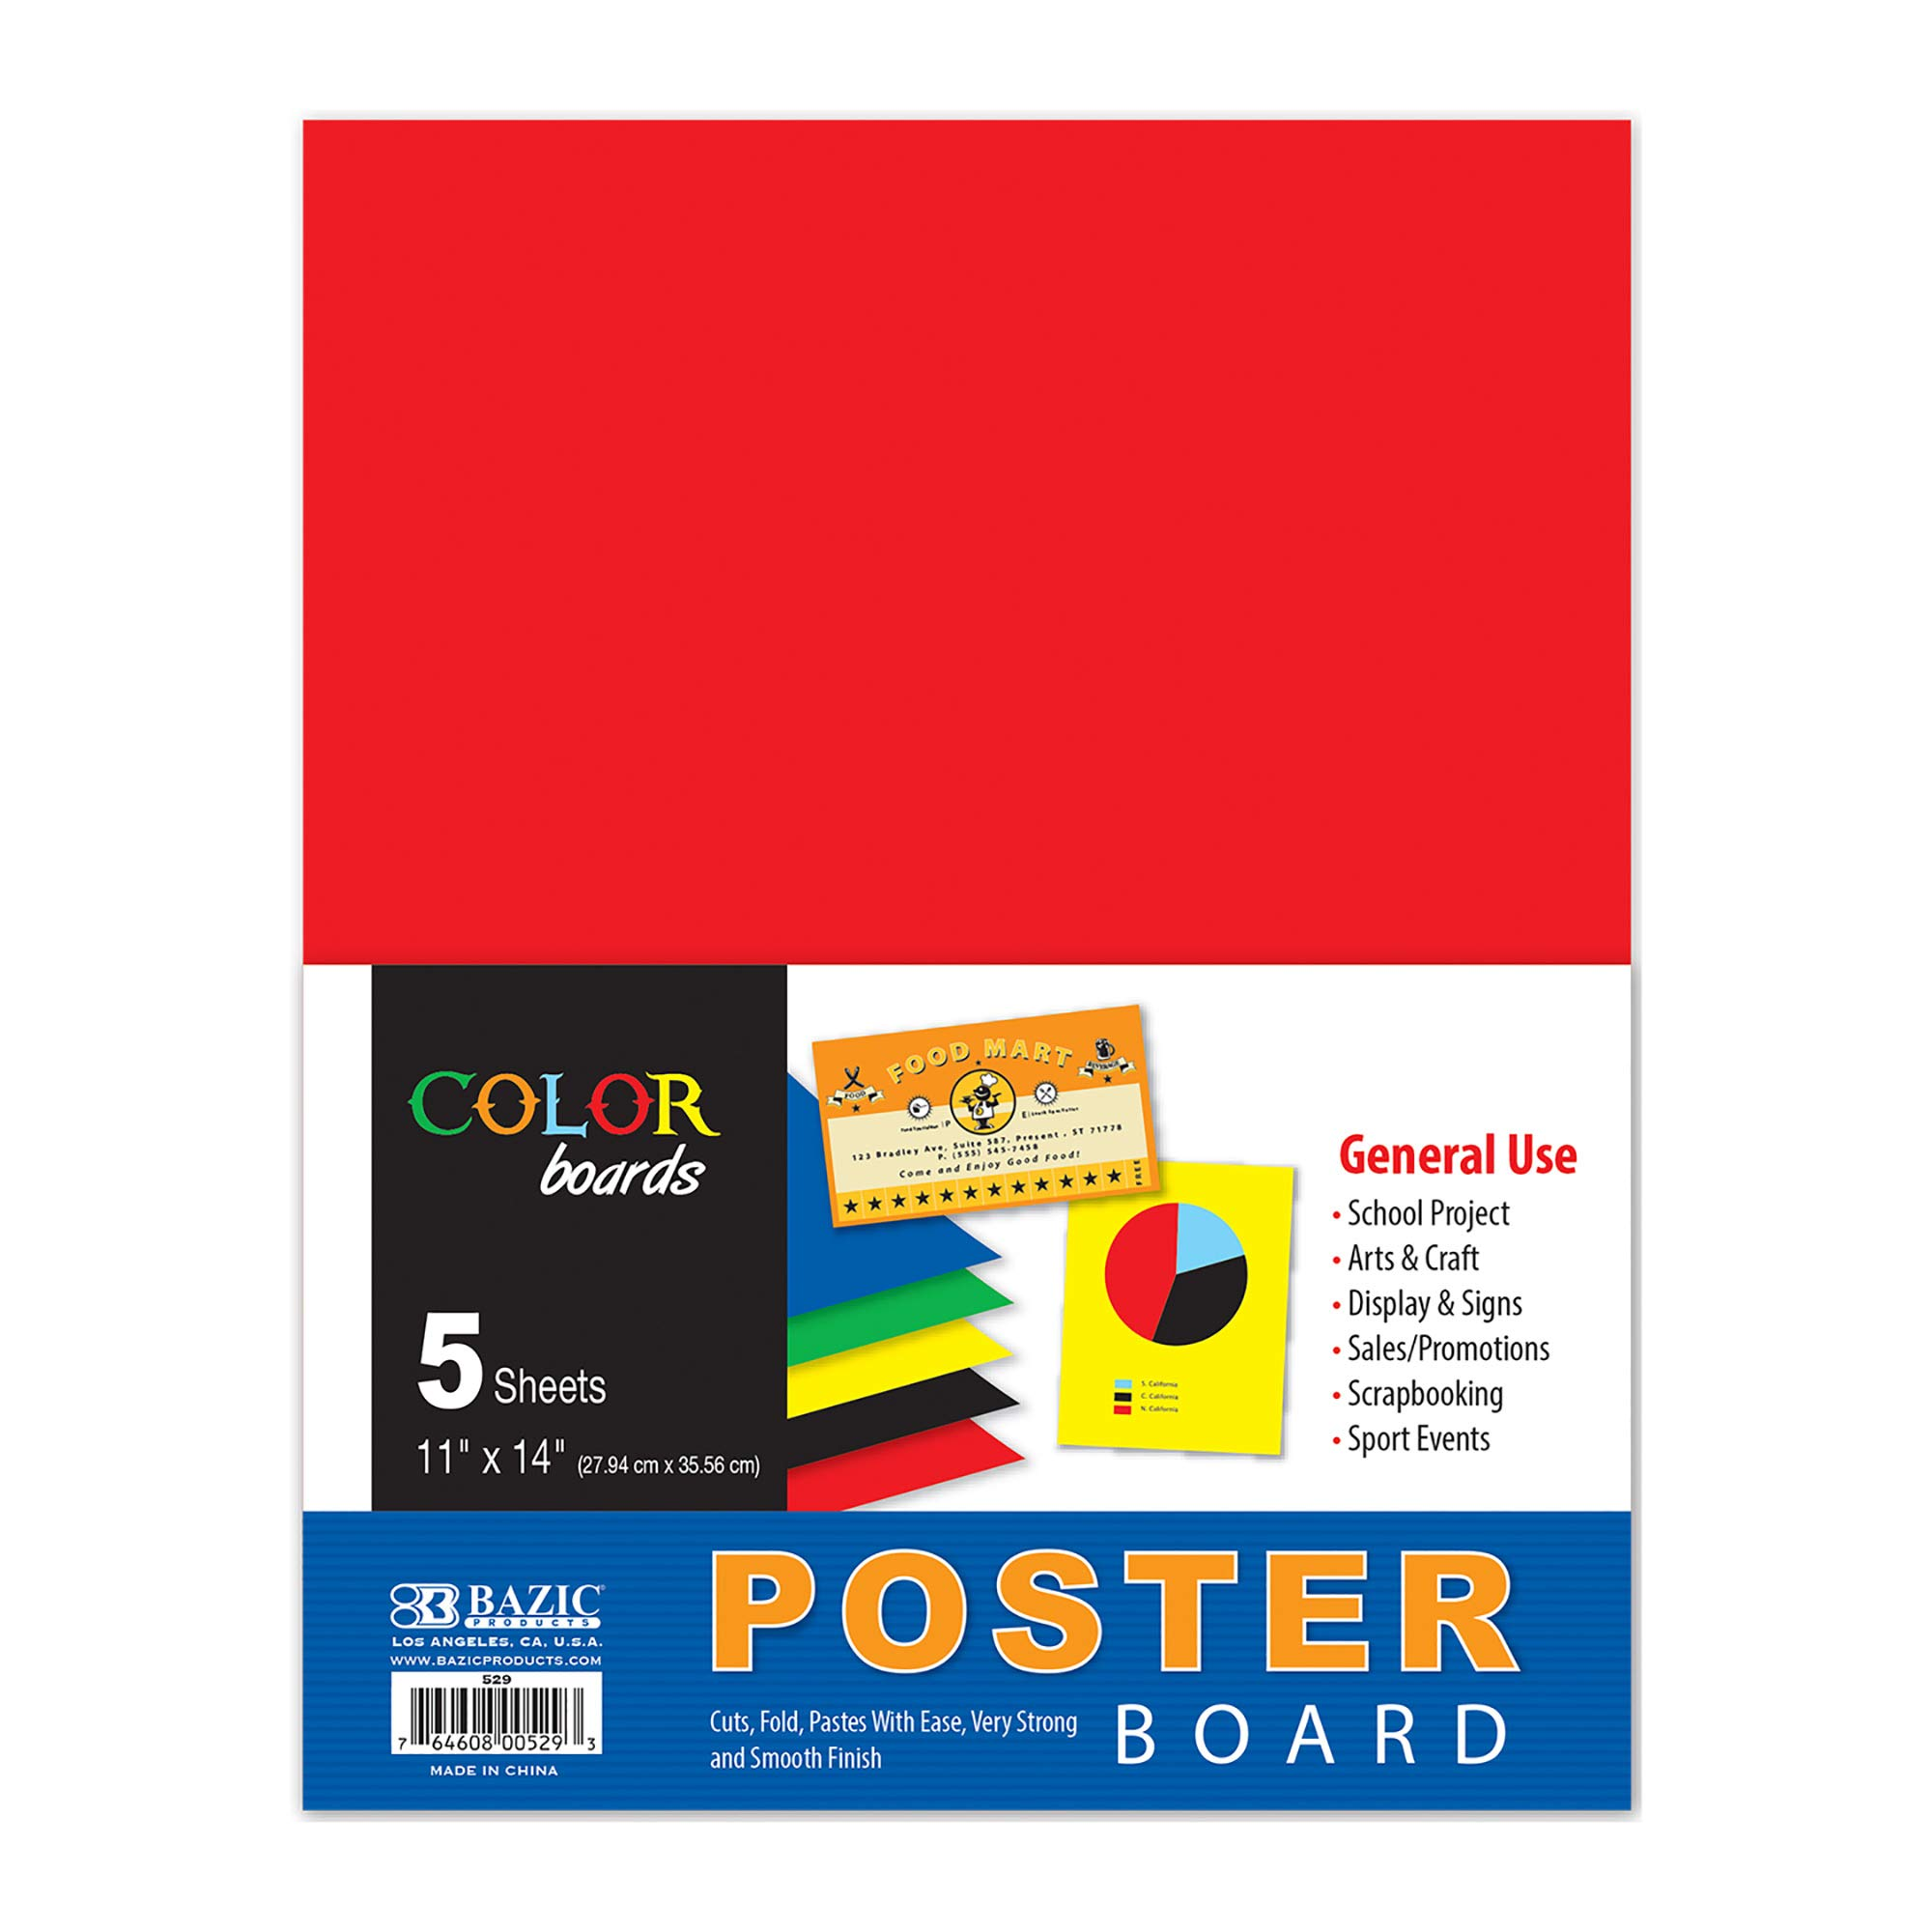 """BAZIC 11"""" X 14"""" Multi Color Poster Board, Assorted Colors Paper Drawing Scrapbooking Display Carton, Art Craft Projects School Home DIY, Red Blue Green Yellow Black (5/Pack)(Case of 48)"""